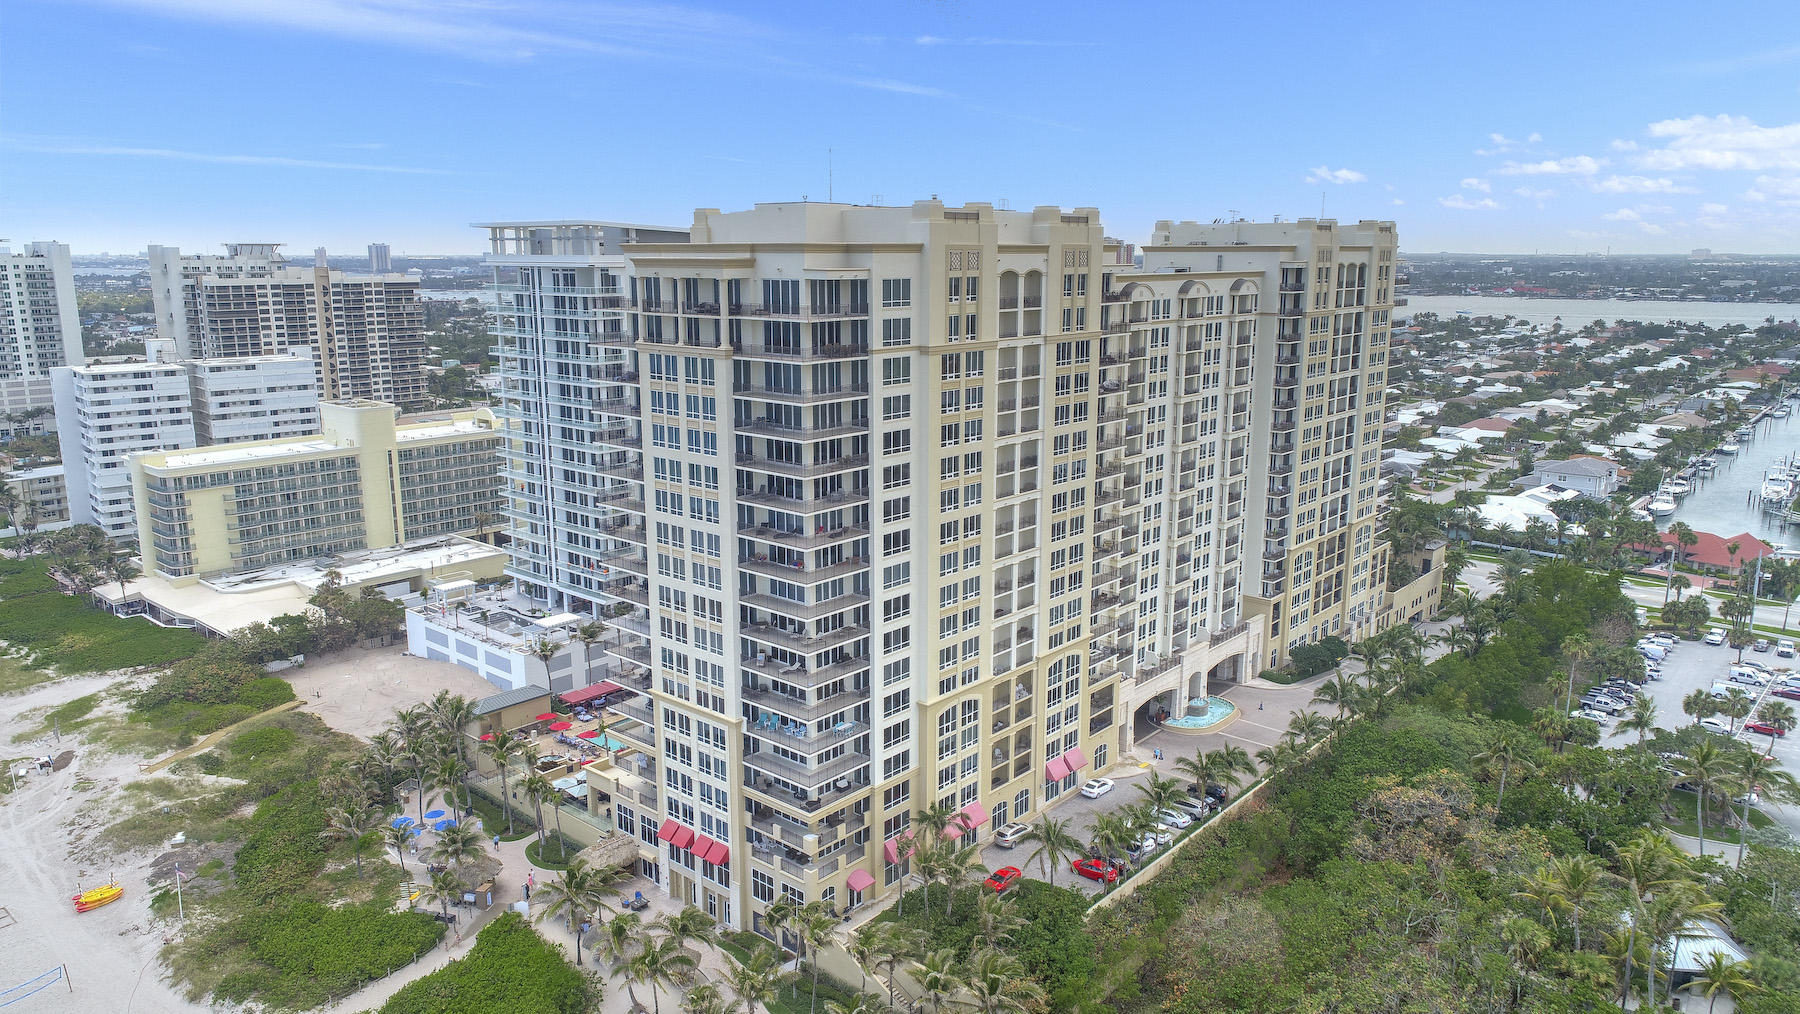 New Home for sale at 3800 Ocean Drive in Singer Island